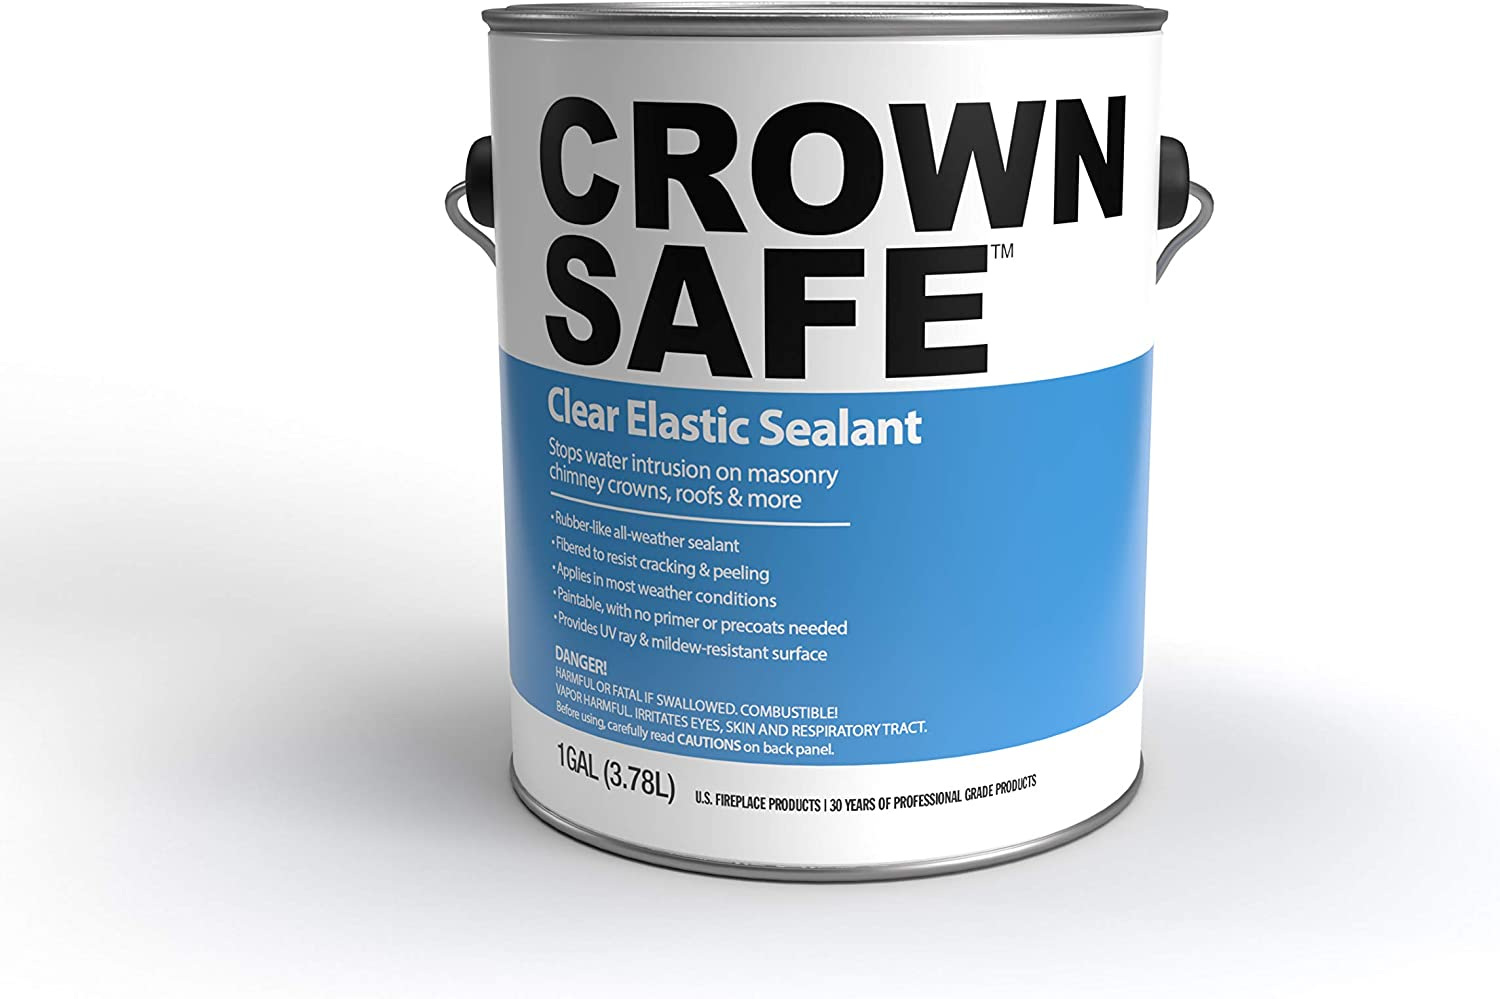 US Fireplace Products Crown Safe (1 Gallon)